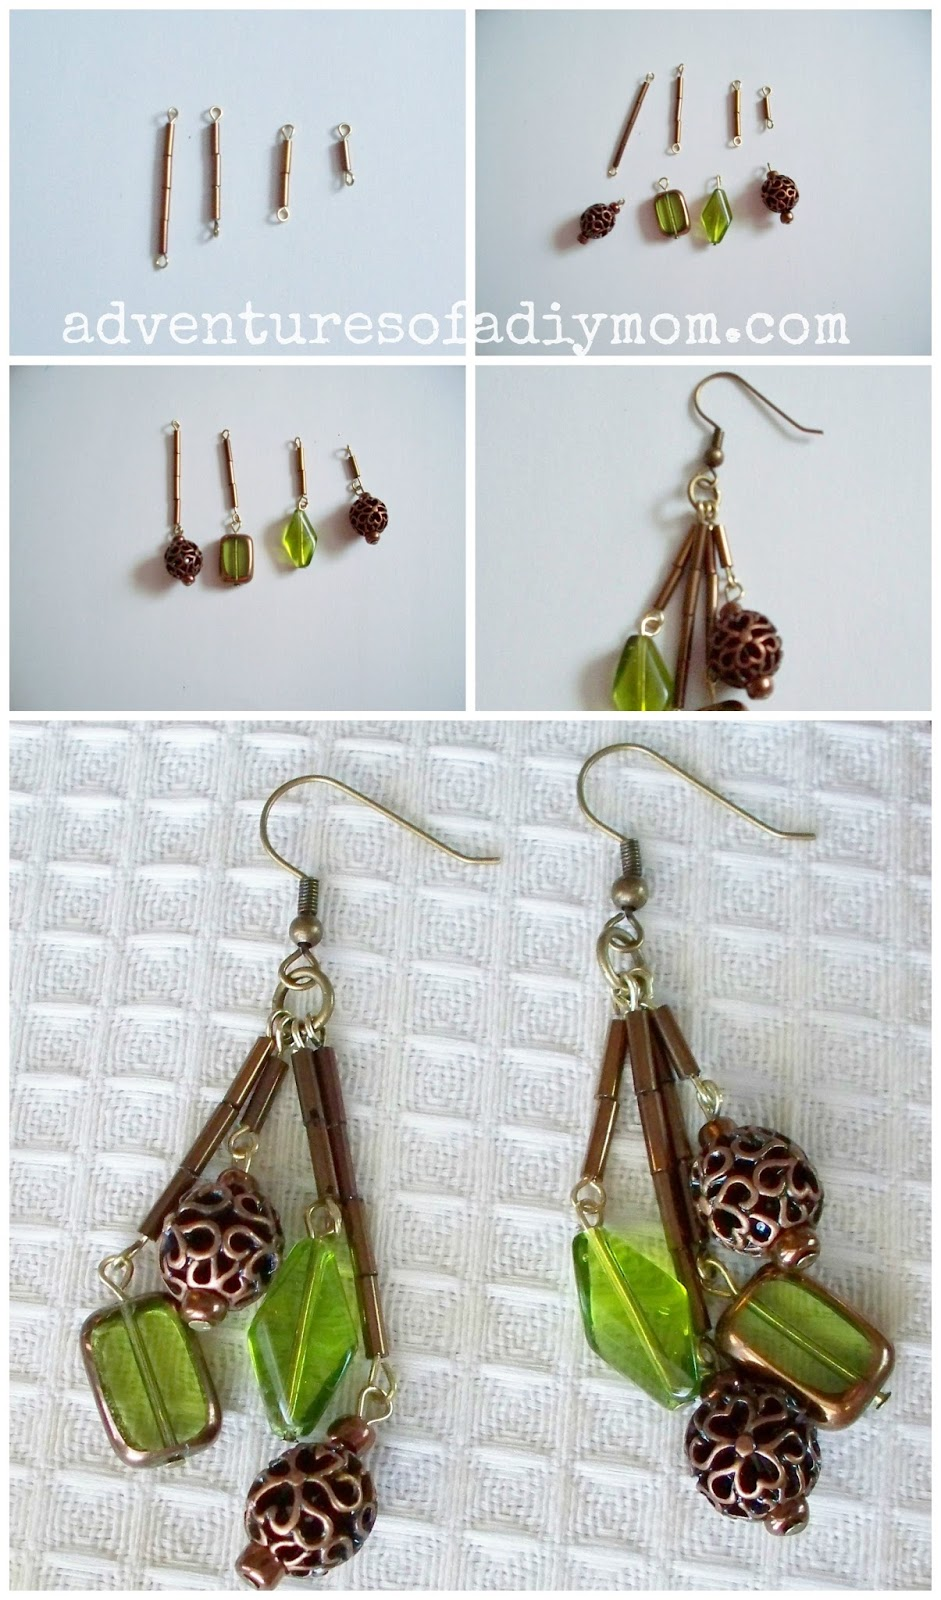 Turn a necklace into earrings